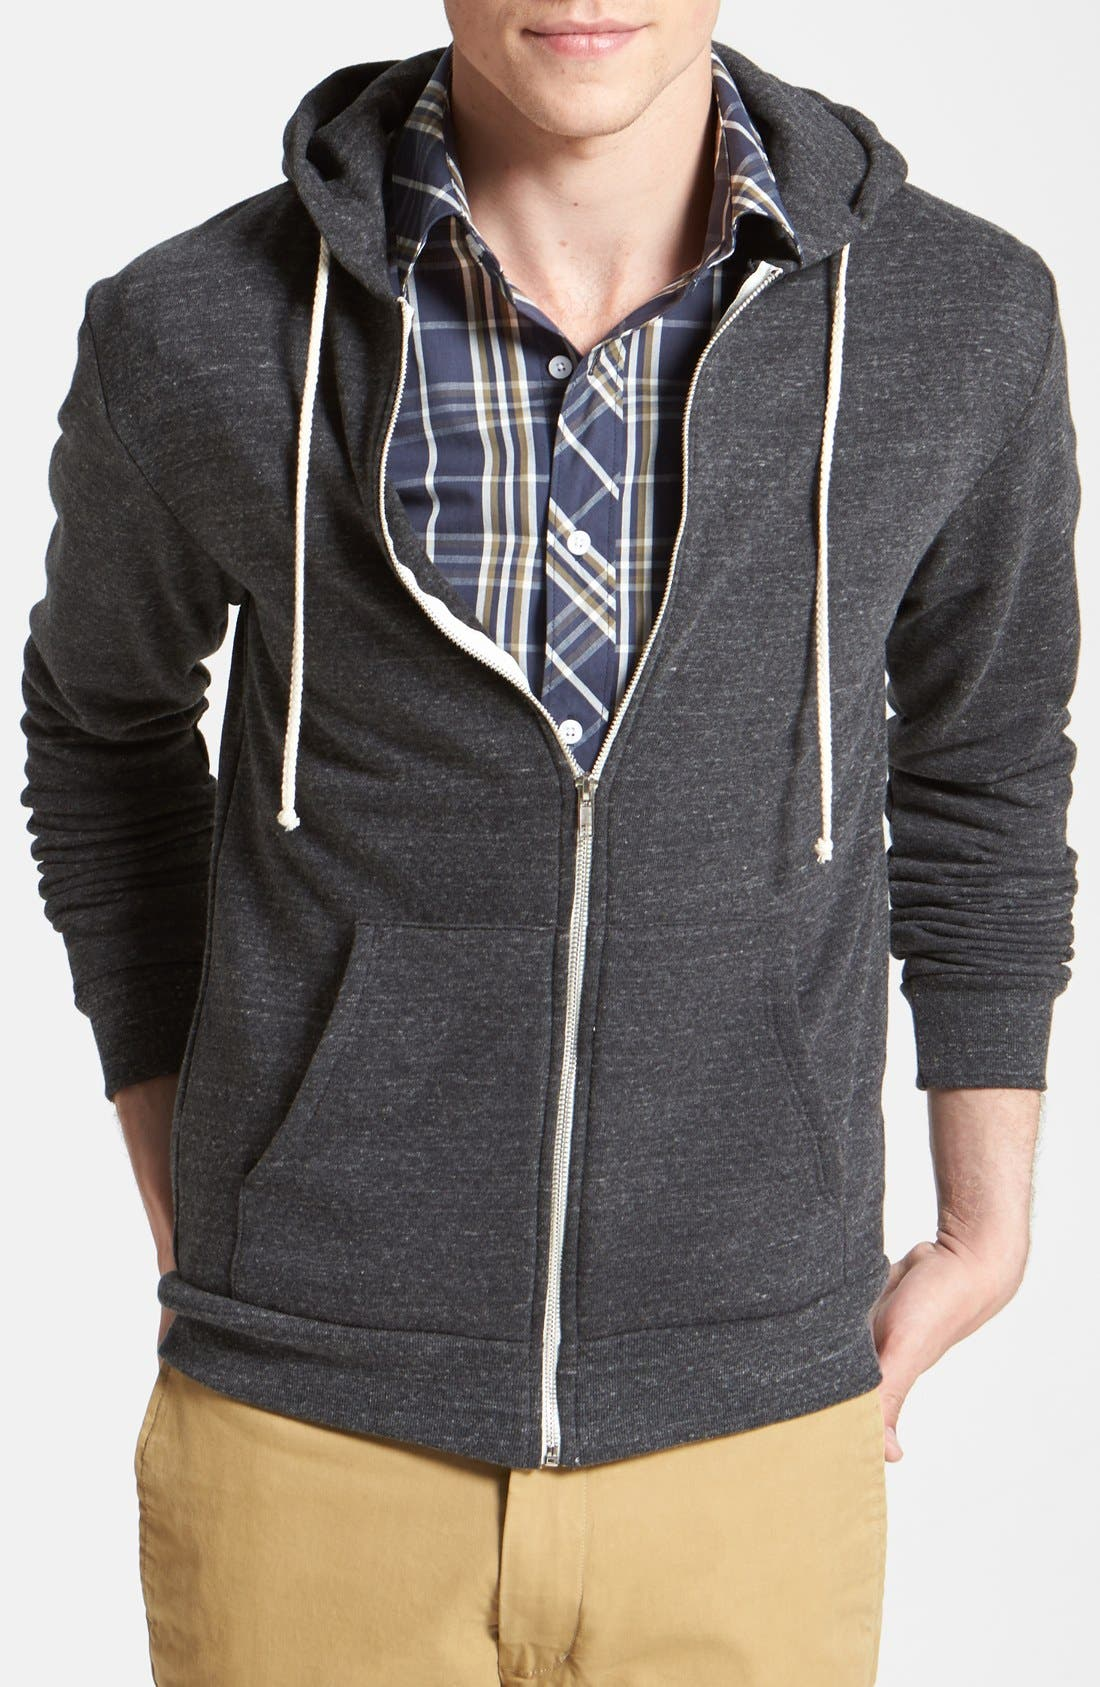 Threads for Thought Trim Fit Heathered Hoodie,                             Main thumbnail 1, color,                             008